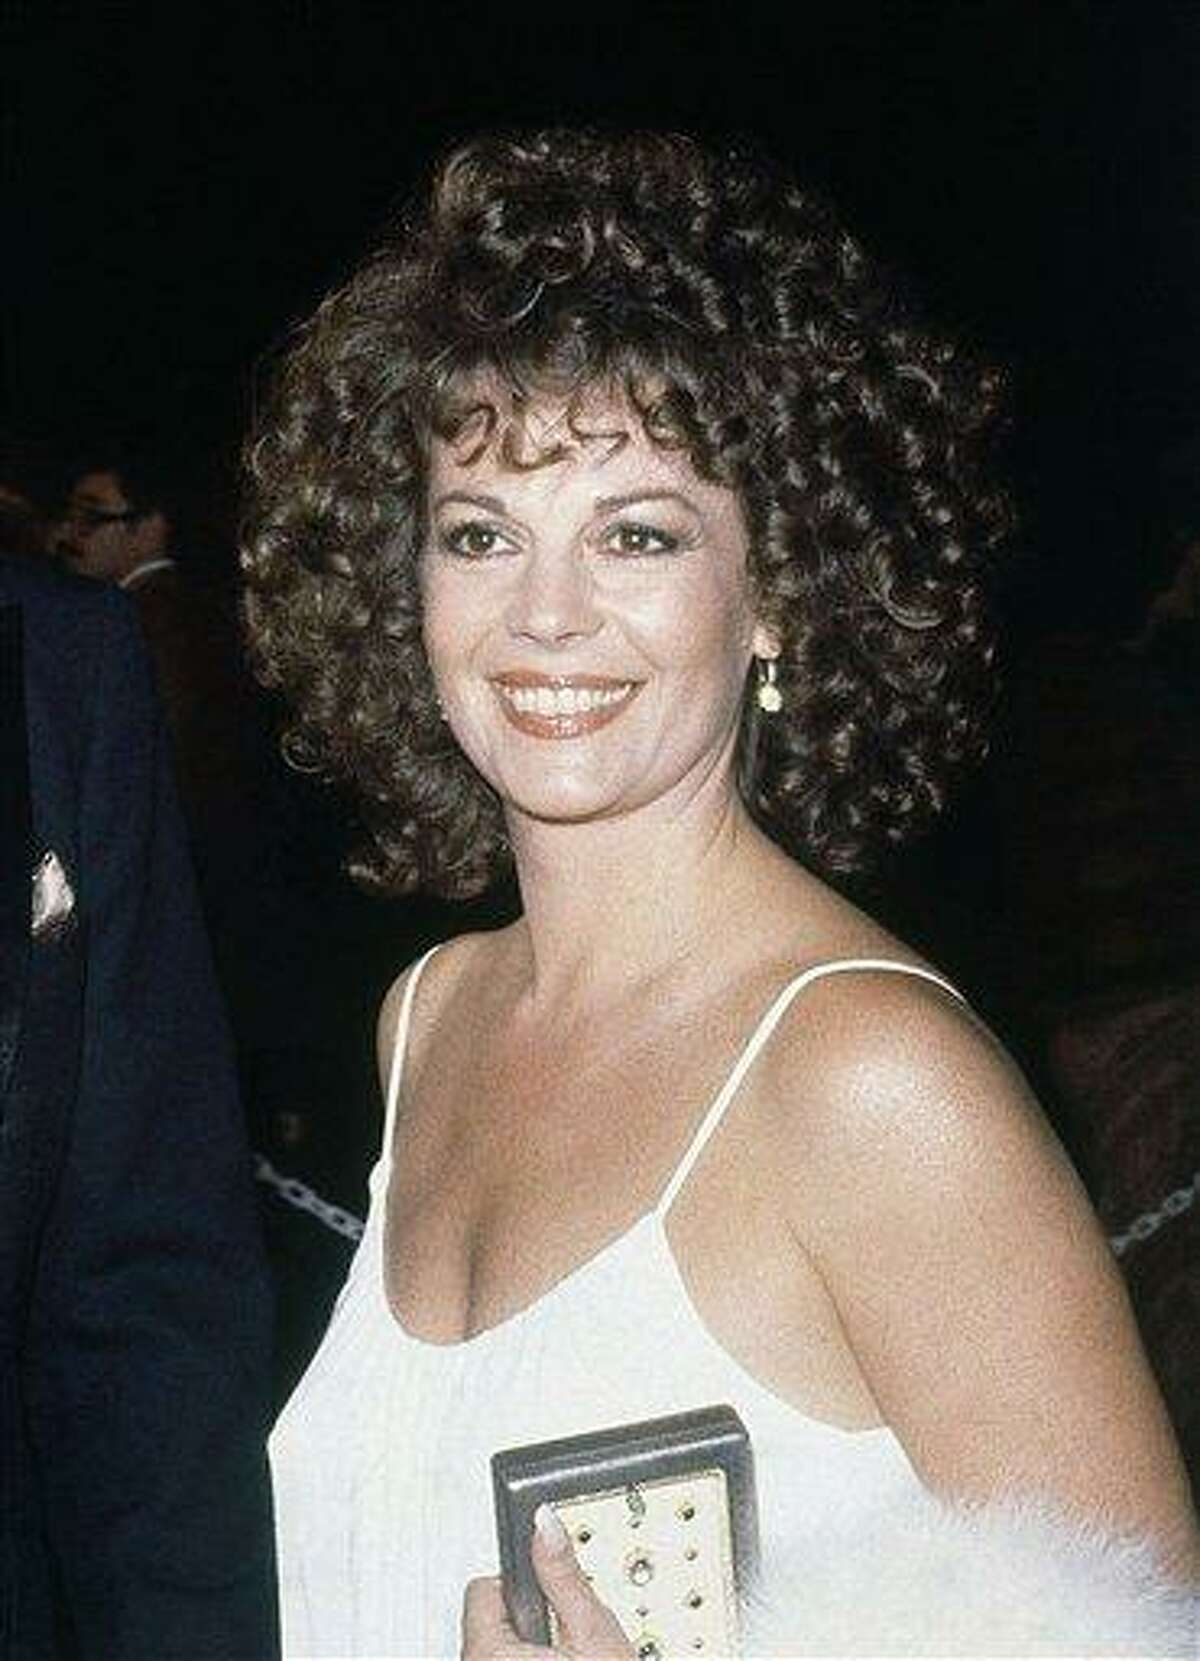 FILE - In this April 9, 1979 file photo, actress Natalie Wood is shown at the 51st Annual Academy Awards in Los Angeles. Los Angeles sheriff's homicide detectives are taking another look at Wood's 1981 drowning death based on new information, officials announced Thursday. (AP)